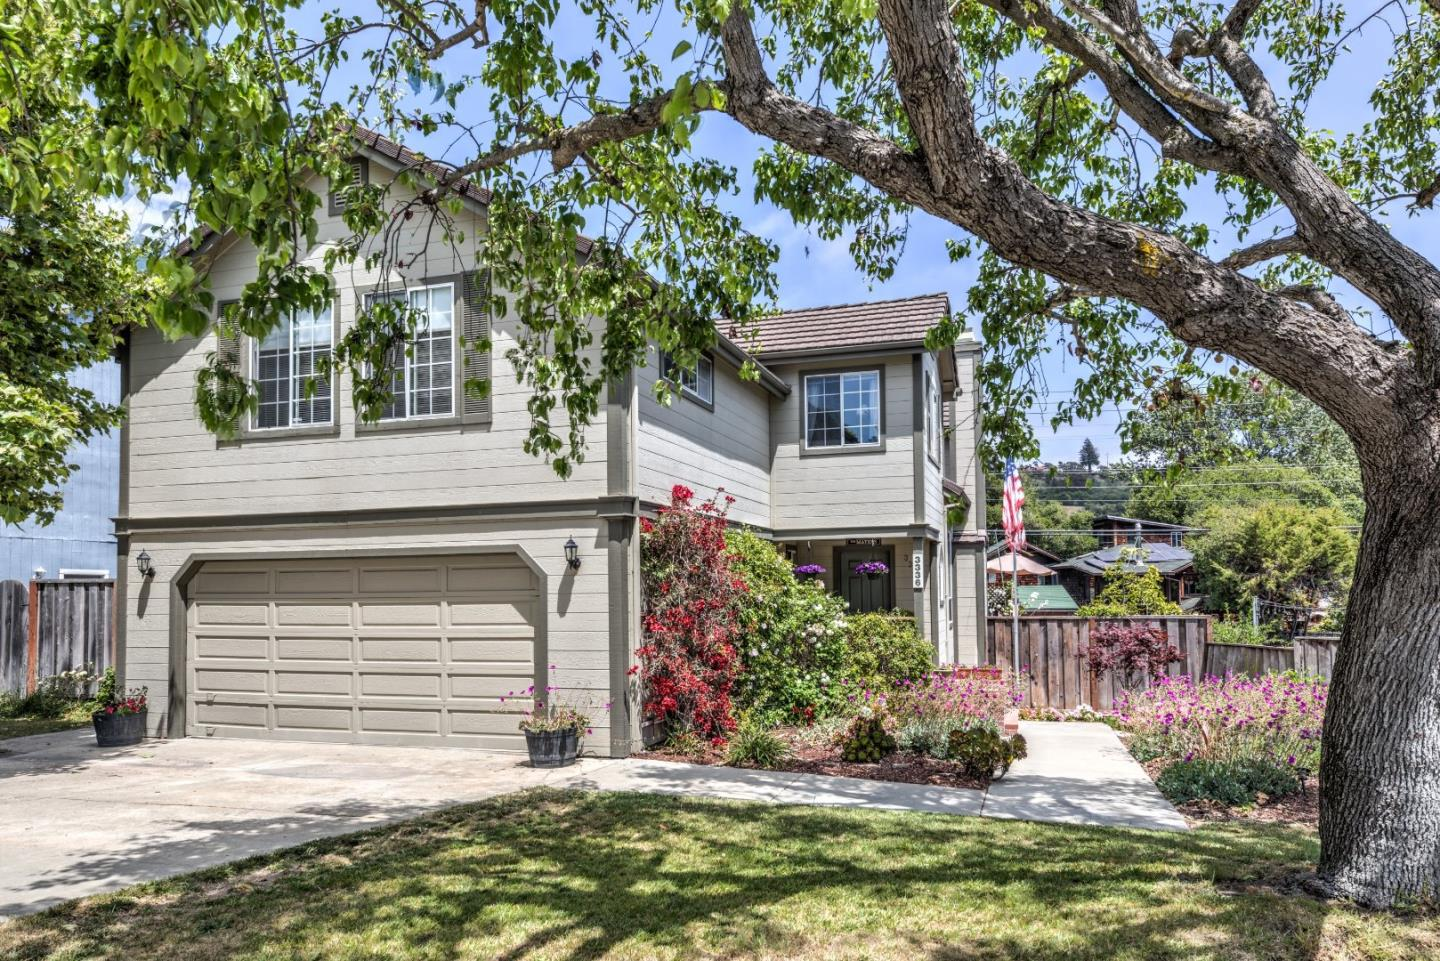 Sought after Location! Walking distance to Downtown Soquel, schools, parks and minutes to Capitola Beach. At almost 3000 sq. feet and rarely available, this modern and contemporary home situated in a cul-de-sac has been lovingly designed and cared for.  The comfortable floor plan offers separate formal living and dining rooms as well as a family room that is conveniently adjacent to the phenomenal chefs kitchen. Beautifully outfitted with Corian counter tops, oak cabinets, two dishwashers, cabinet depth built-in refrigerator, and a large bay window that lets in natural light, this kitchen is an entertainers delight! Also featuring dramatic vaulted ceilings in the living room, hardwood floors, new carpet, two fireplaces, built-in bookcases and closet organizers, master bedroom with A/C and updated bathroom. Outside is a new composite deck for relaxation and BBQ's, raised planters to grow your favorite vegetables, and as a bonus, plentiful storage is available under the house.